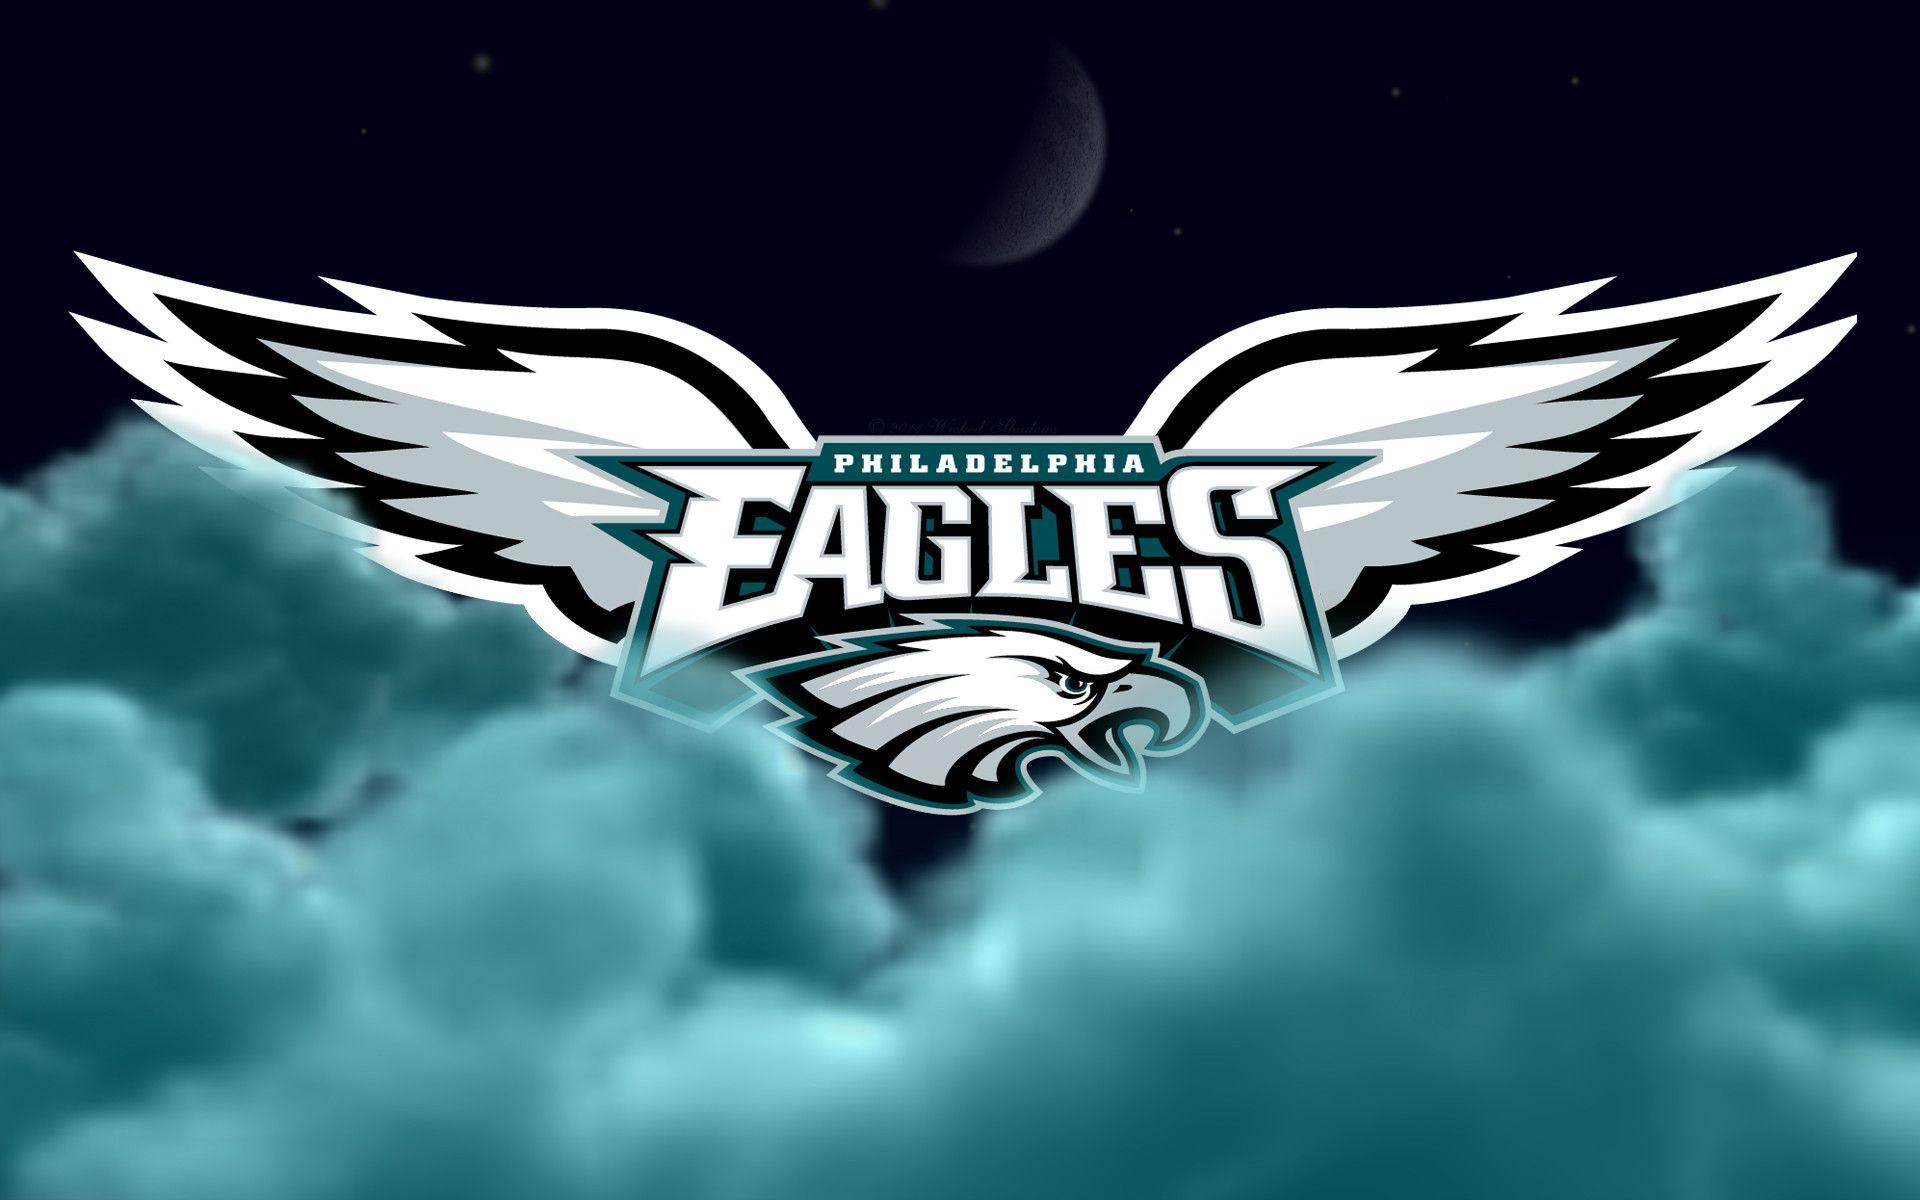 wallpaper eagles logo - photo #12